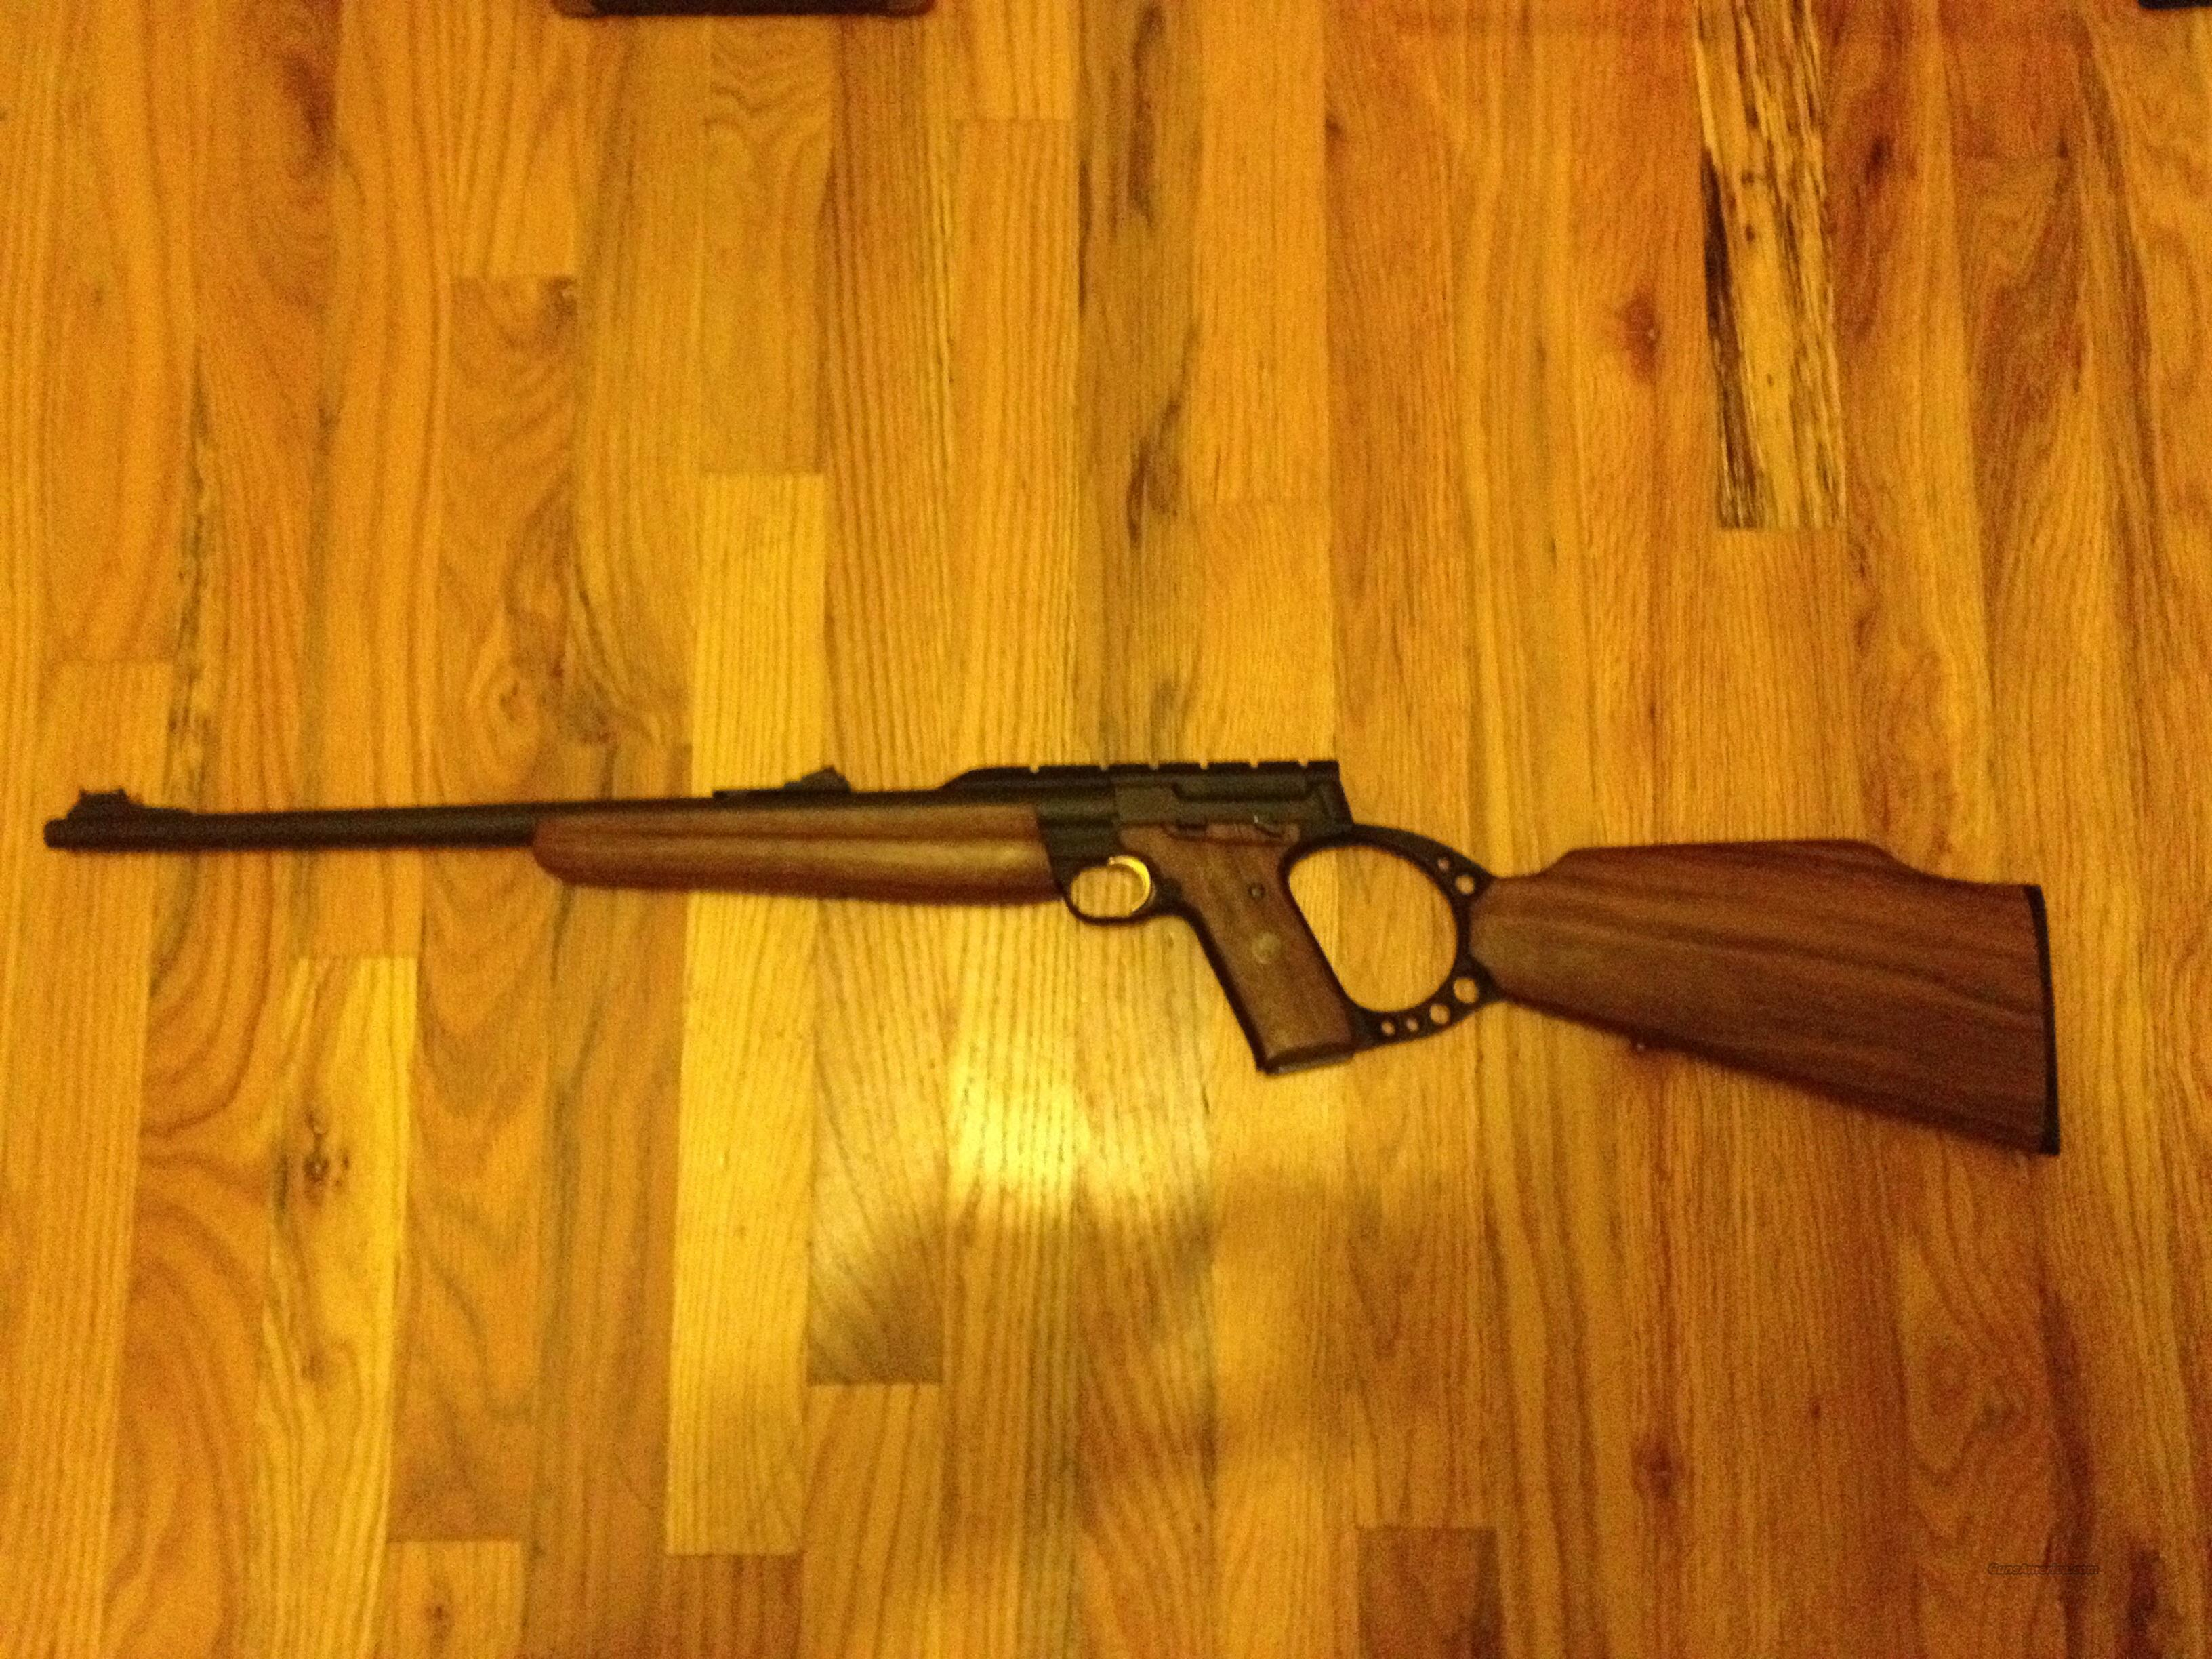 Browning buckmark sporter carbine w/ 3 mags  Guns > Rifles > Browning Rifles > Semi Auto > Hunting